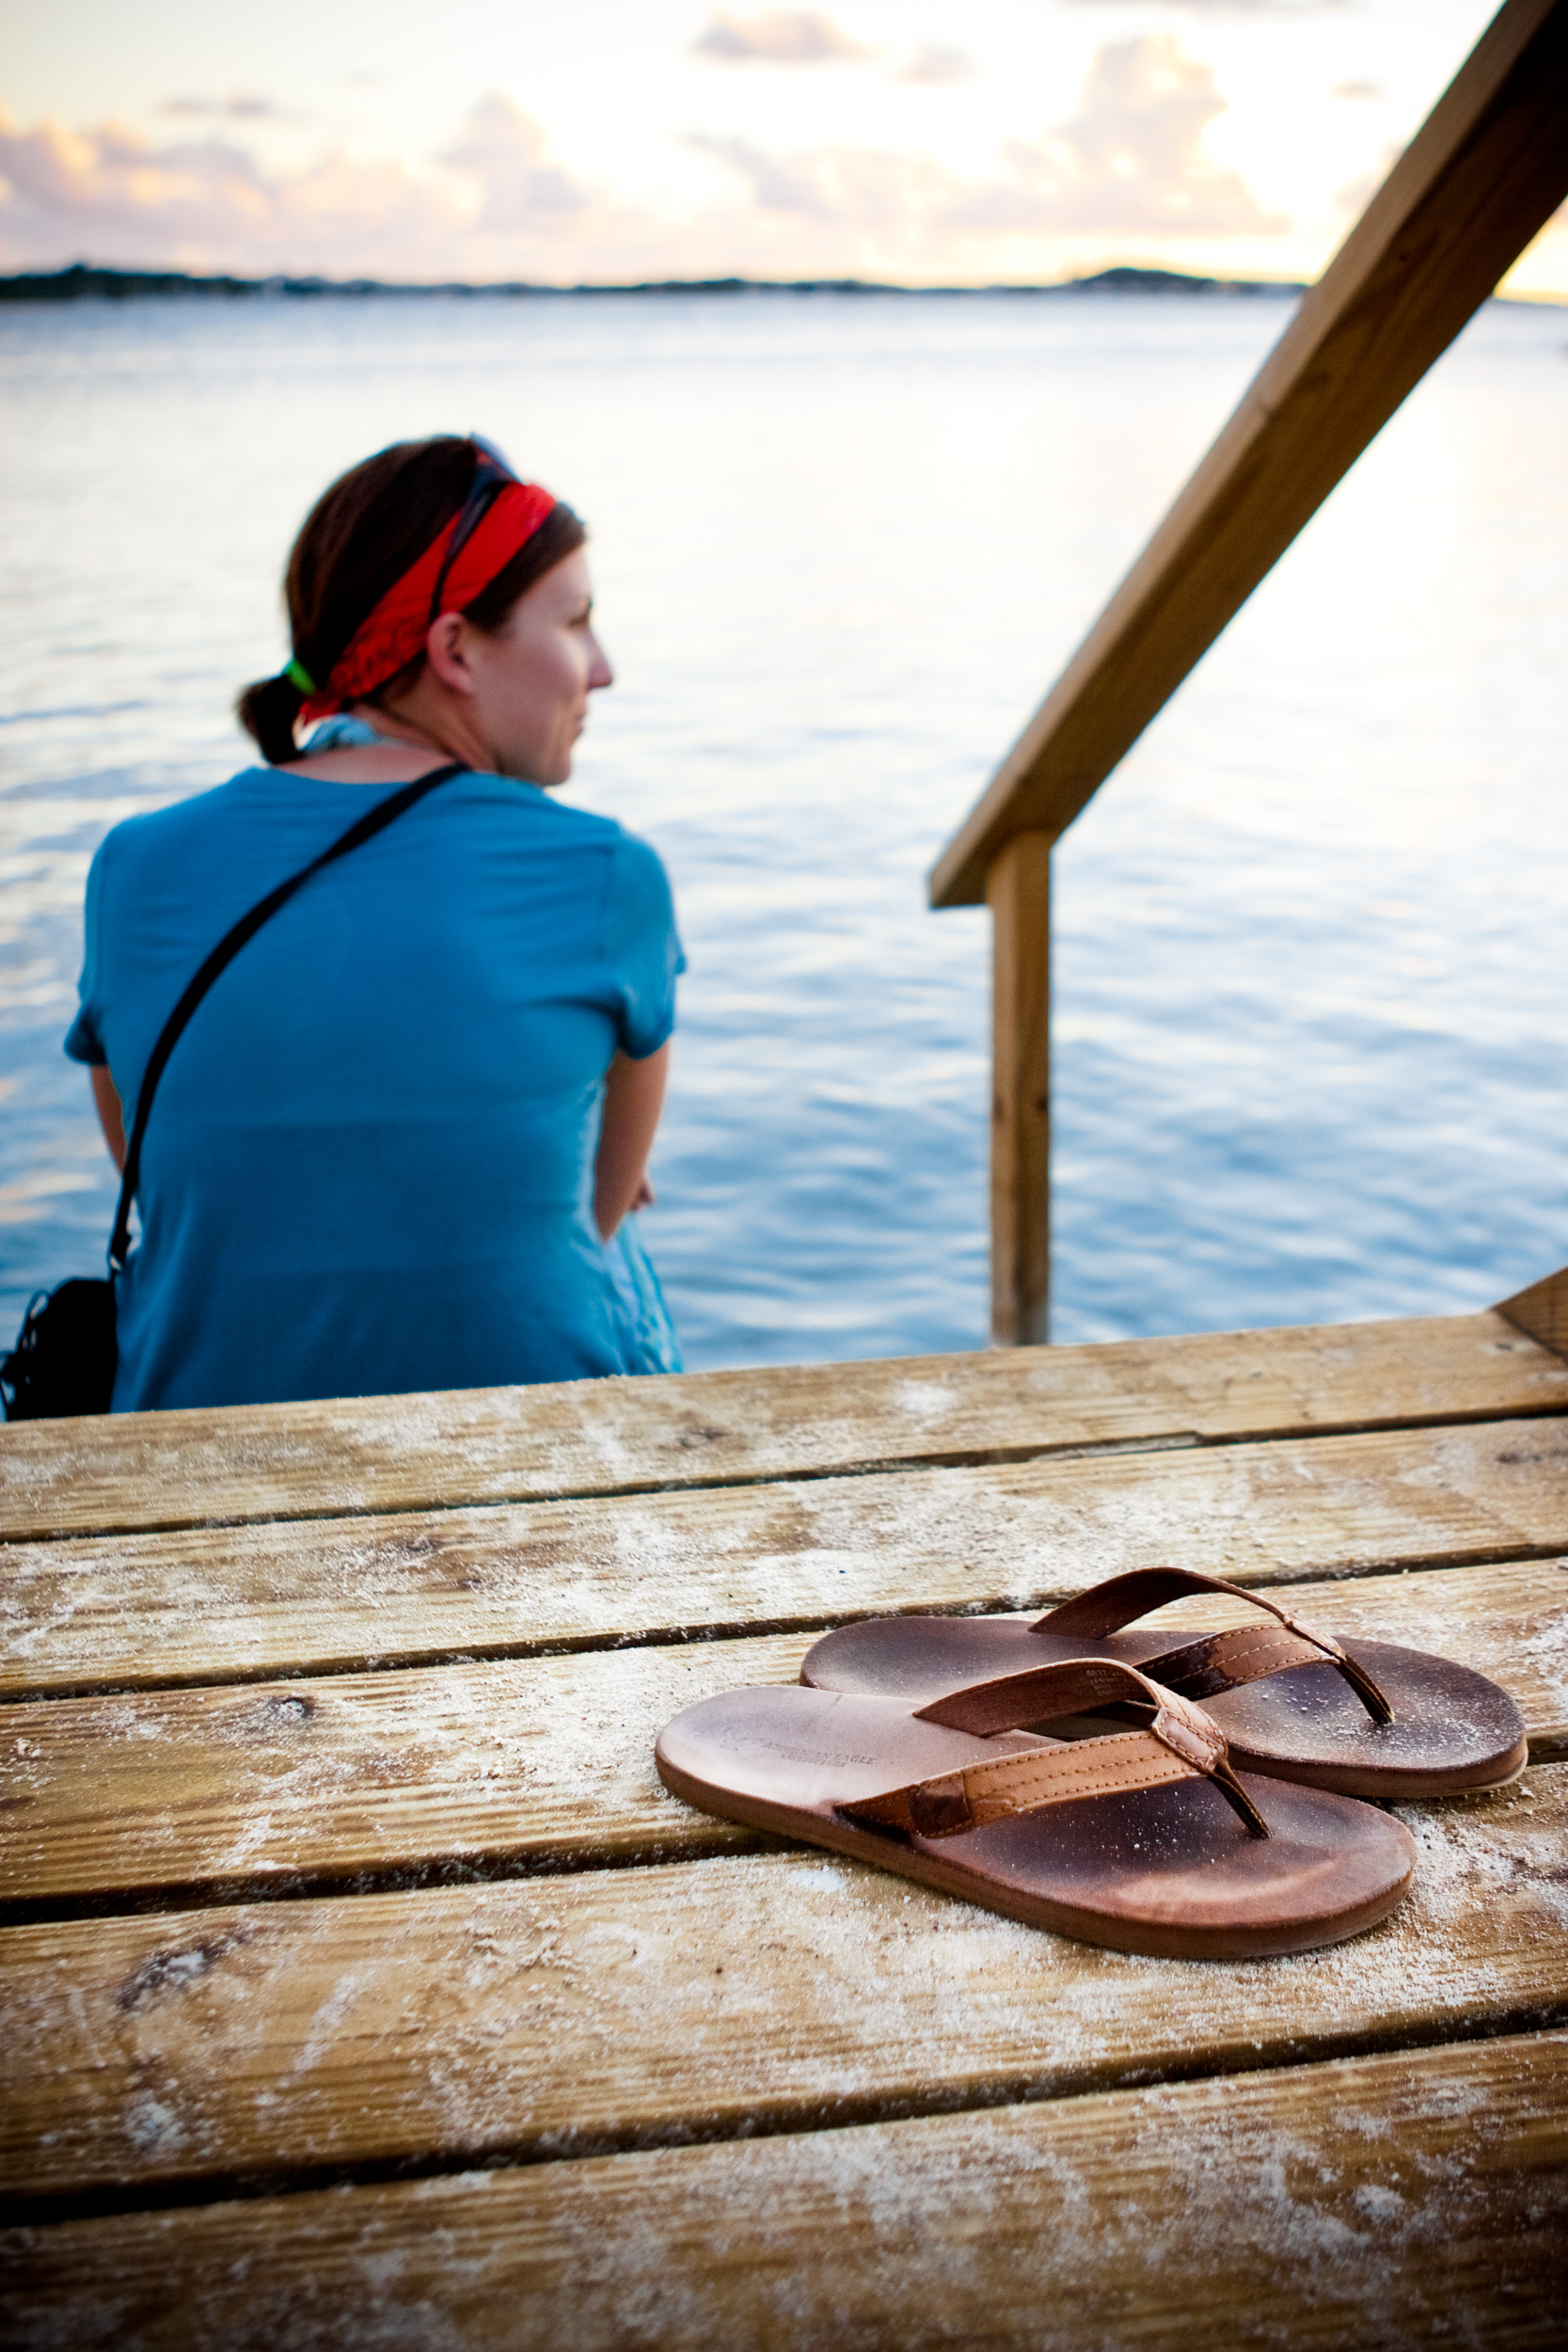 Woman admires a sunset view over blue water during a sailing vacation with her flip flops in the foreground.